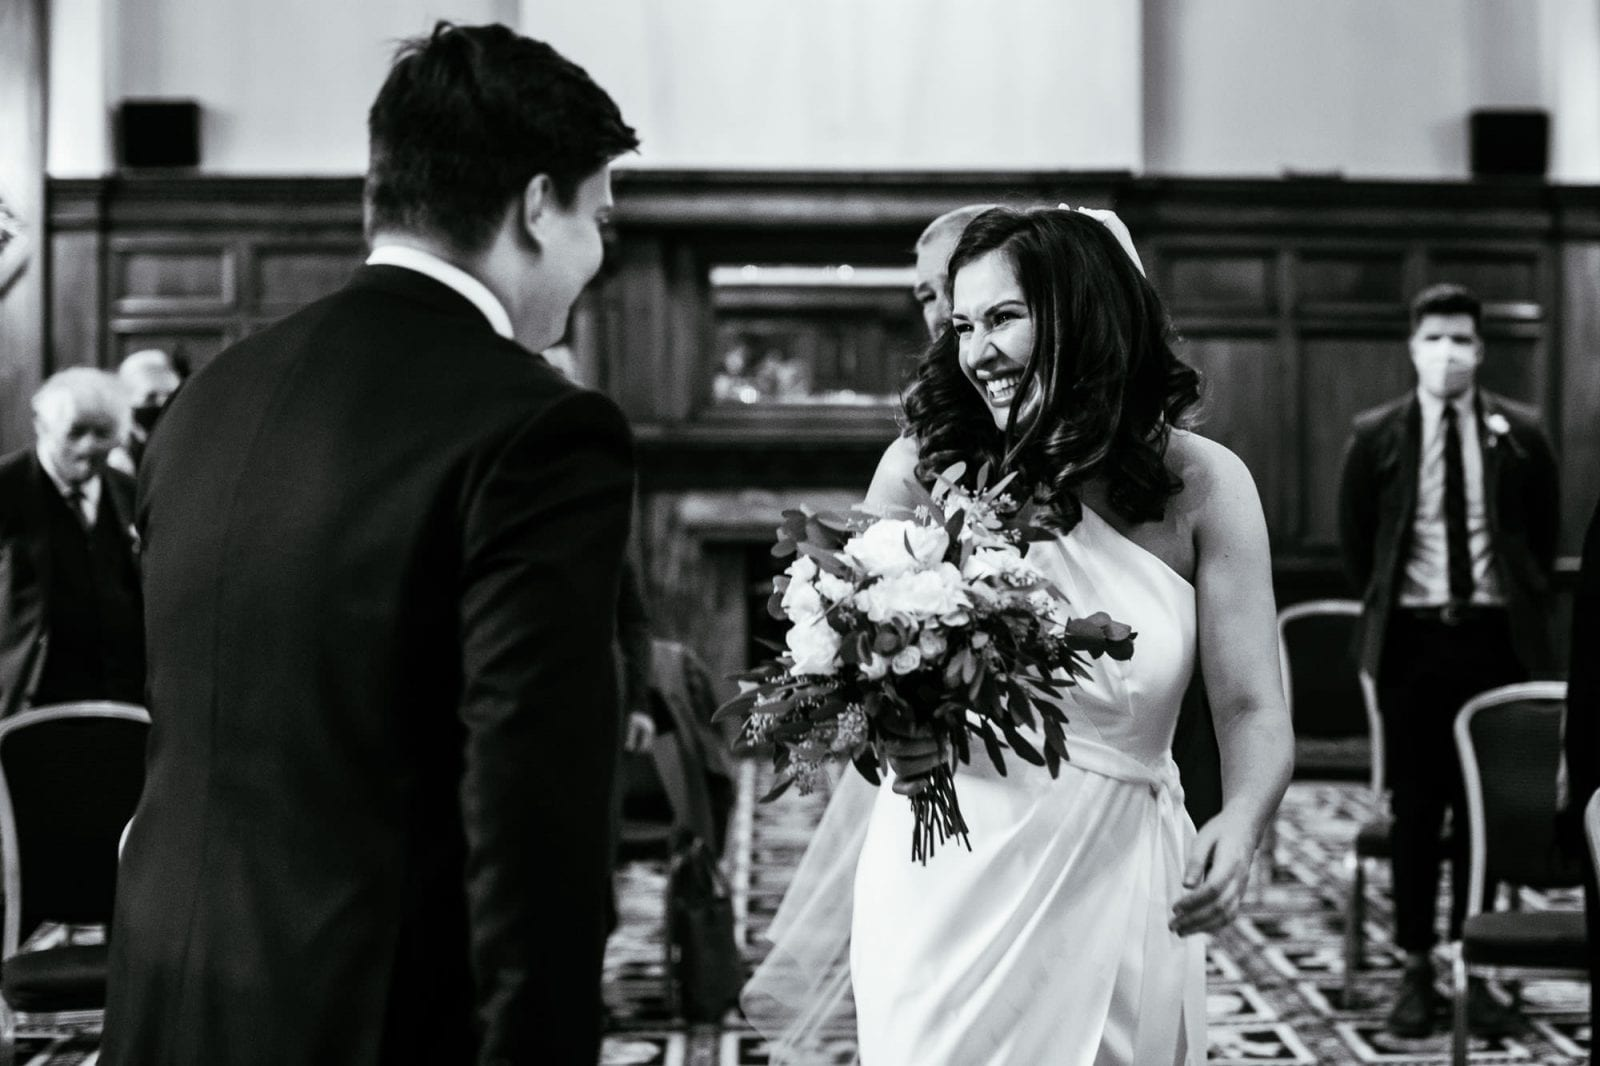 Bride smiling as she greets groom at the end of the aisle